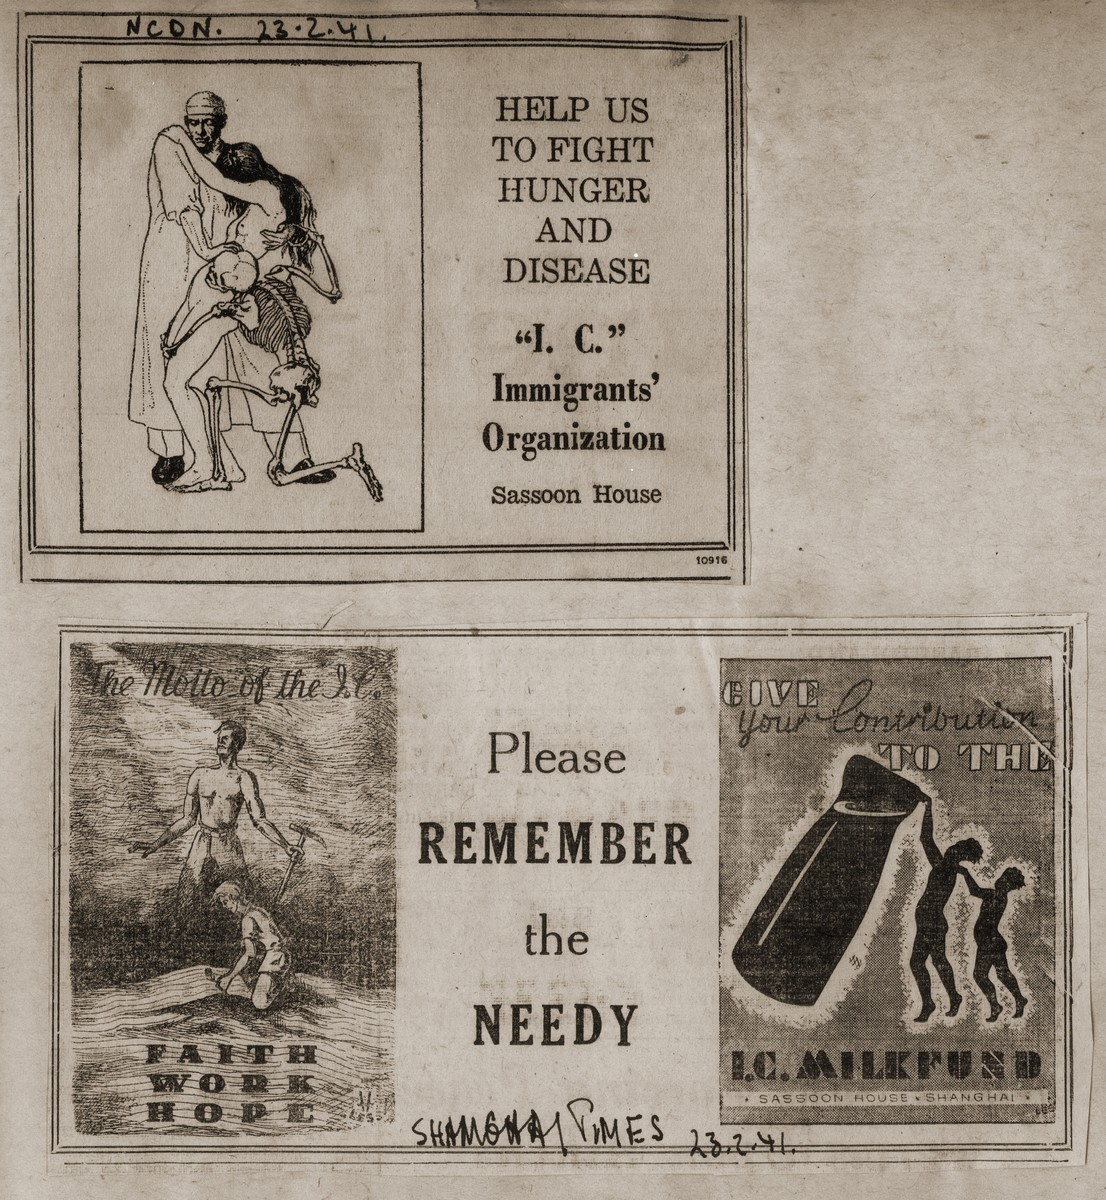 Advertisements from the Shanghai Times soliciting donations for the International Committee for the Organization of European Immigrants in China.